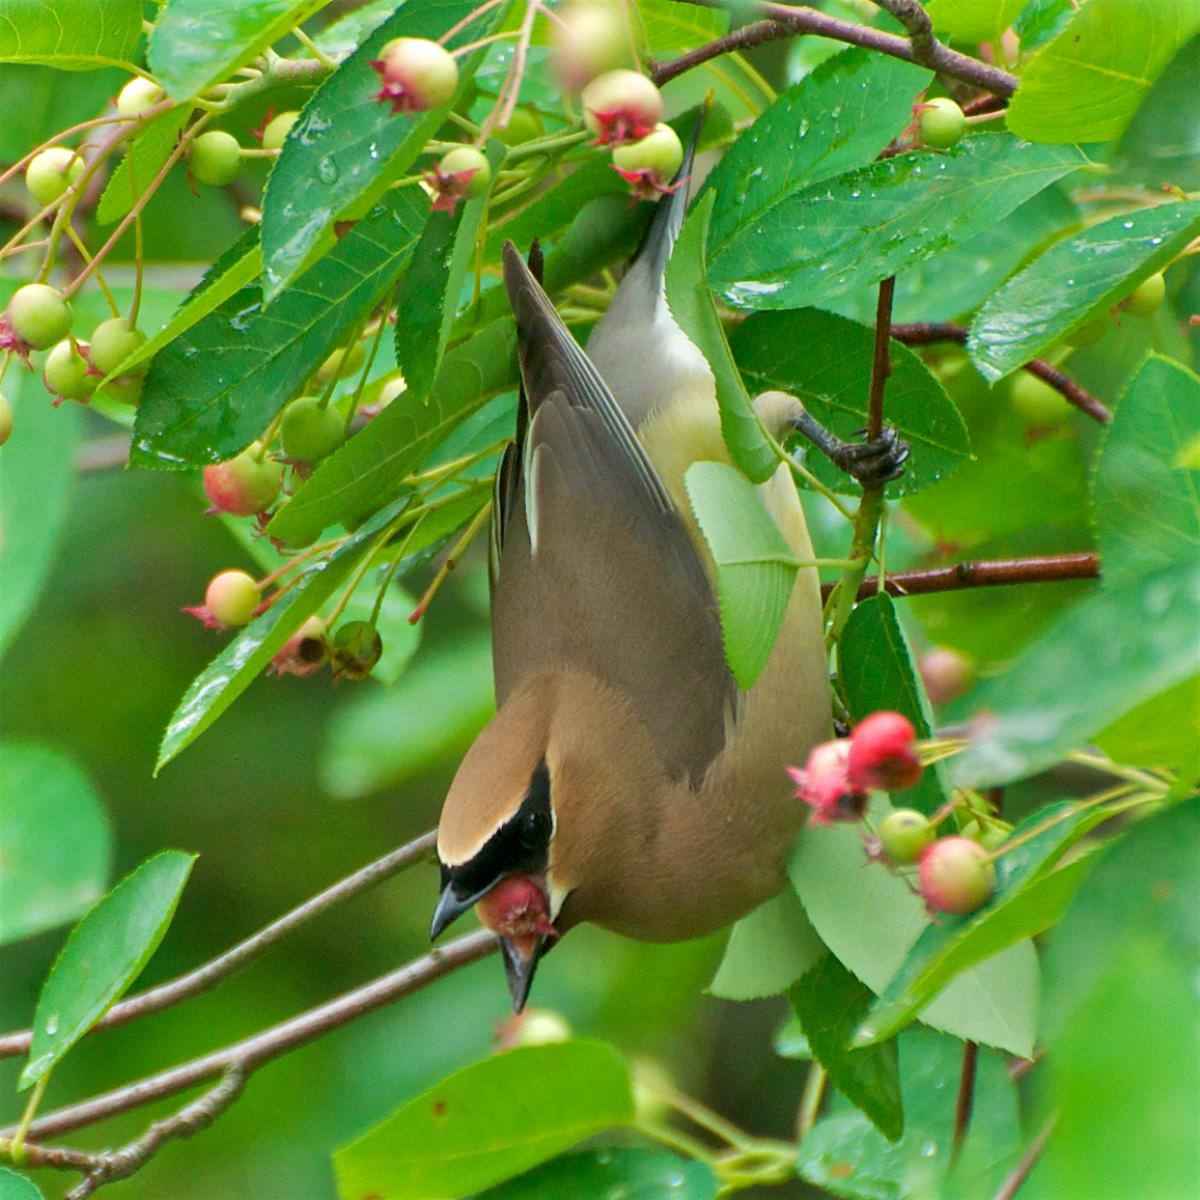 Cedar Waxwing eating Amelanchier berries.